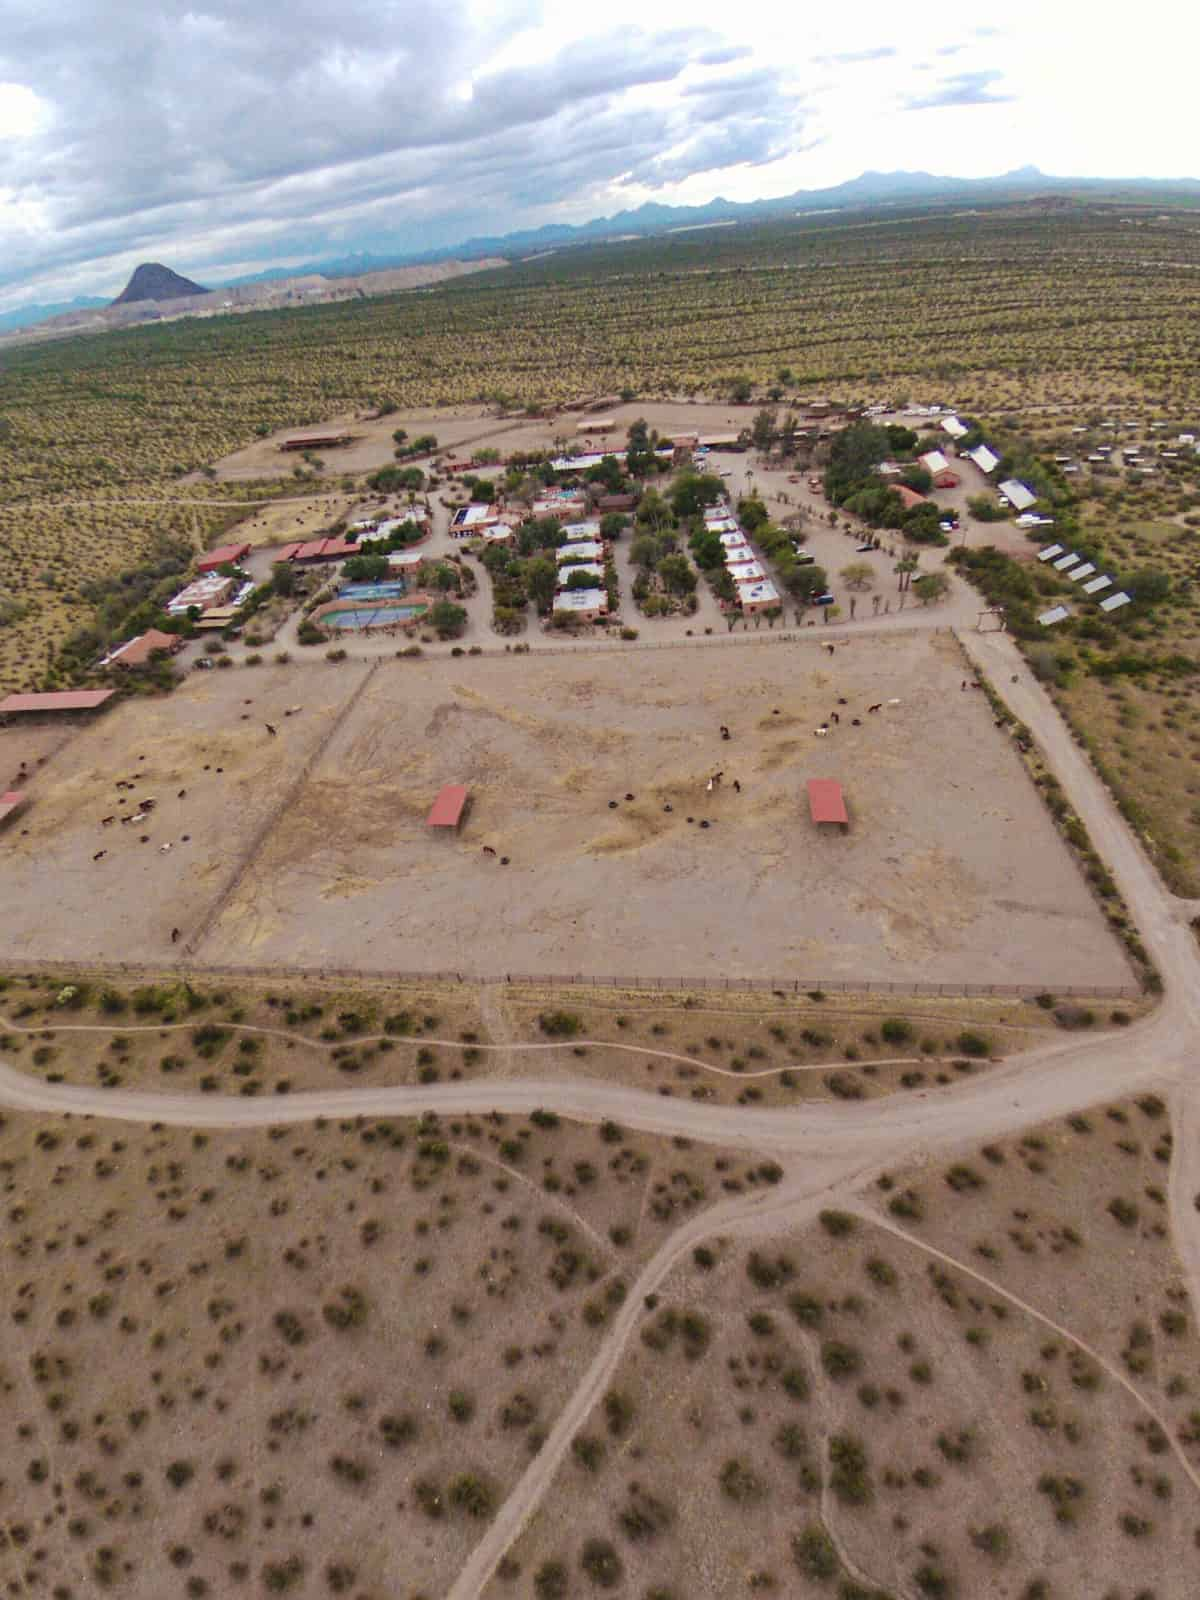 White Stallion Ranch, the Best All-Inclusive Resort in Arizona showing an ariel view of the dude ranch.